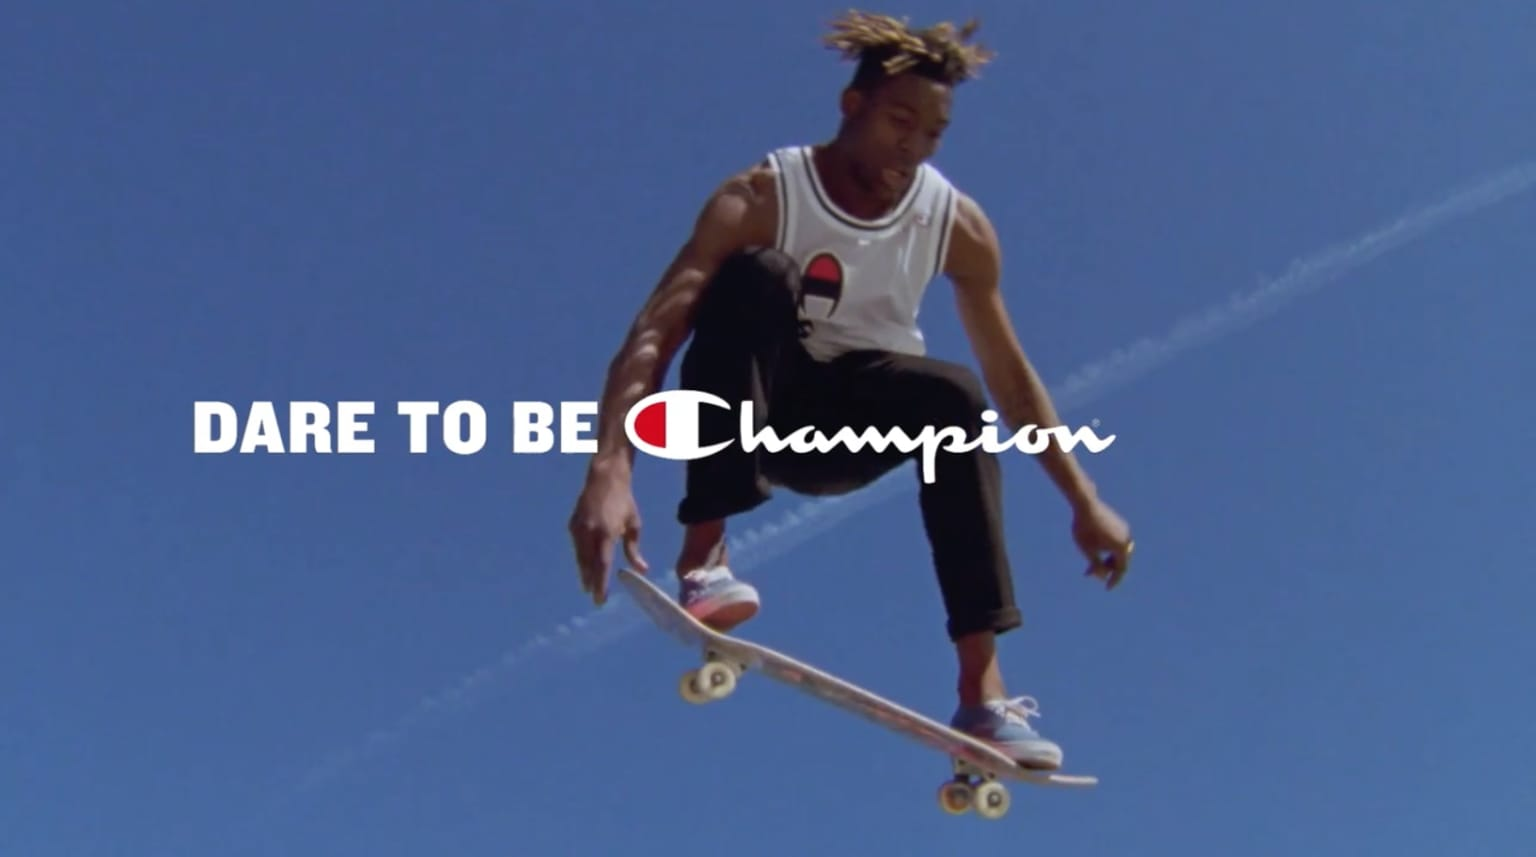 Dare to be Champion